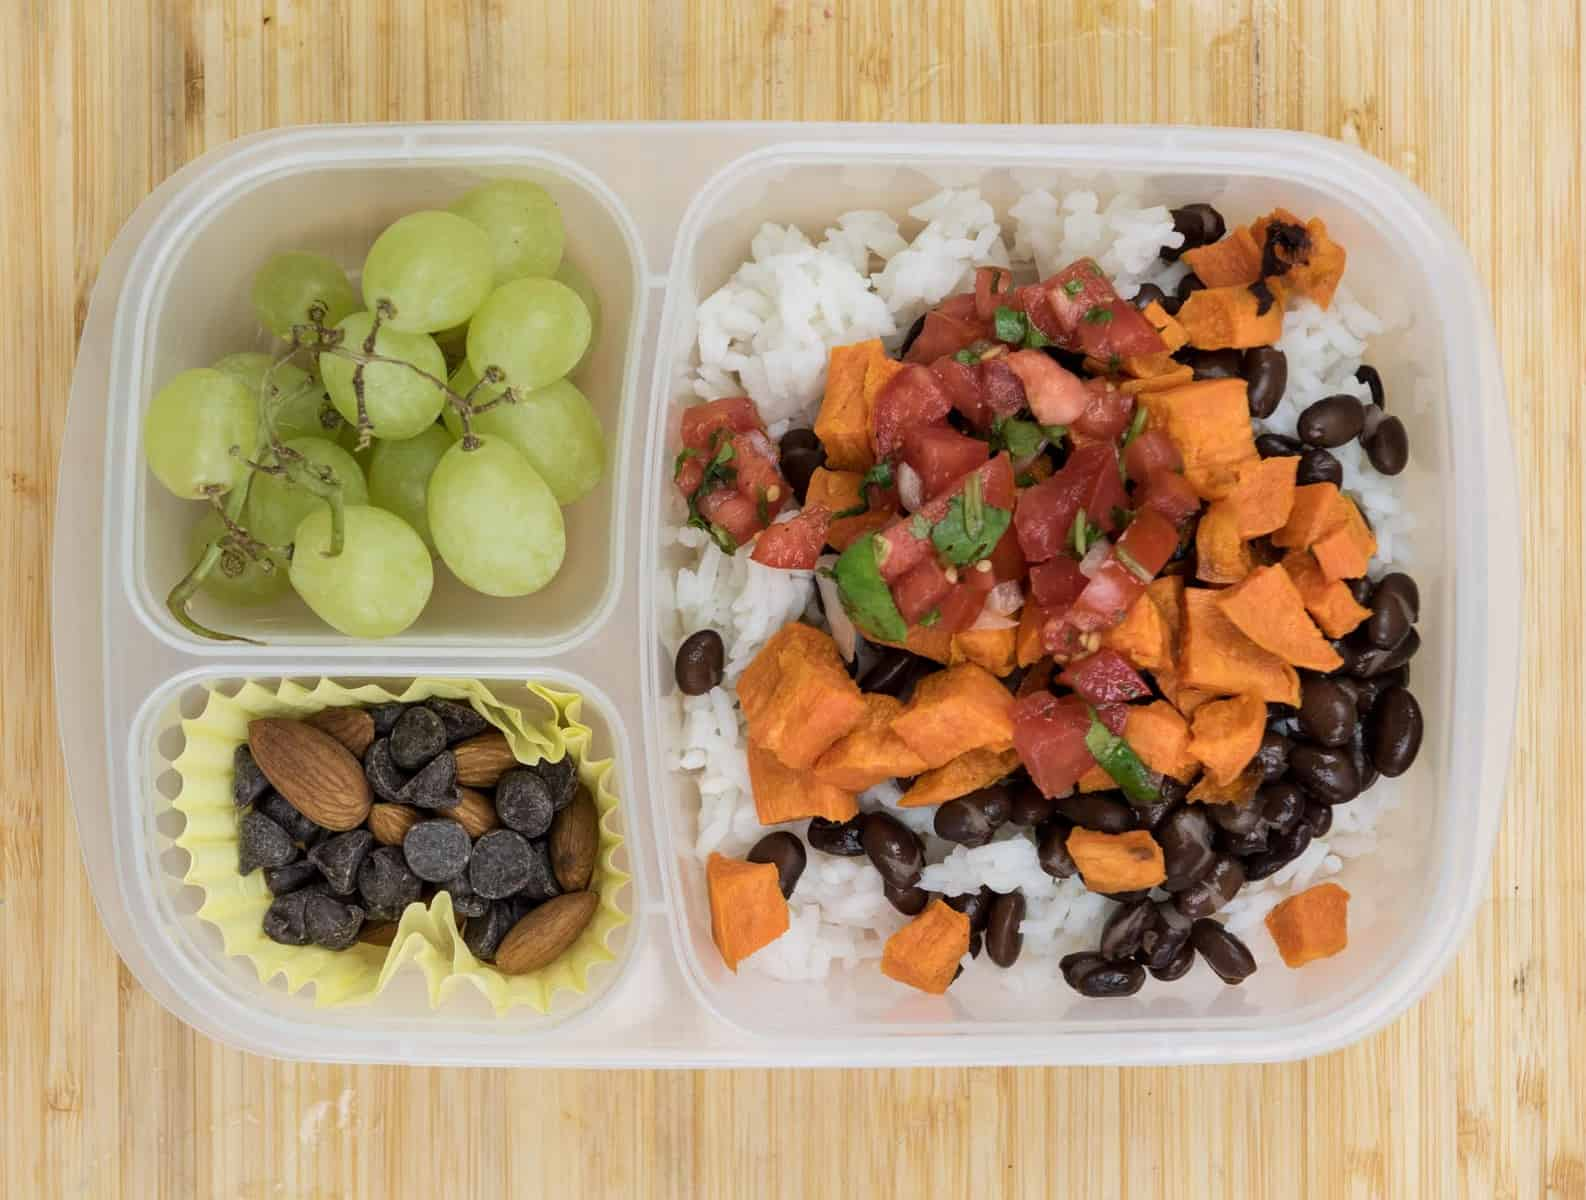 Lunch Box Ideas - Burrito Bowl Lunch Box